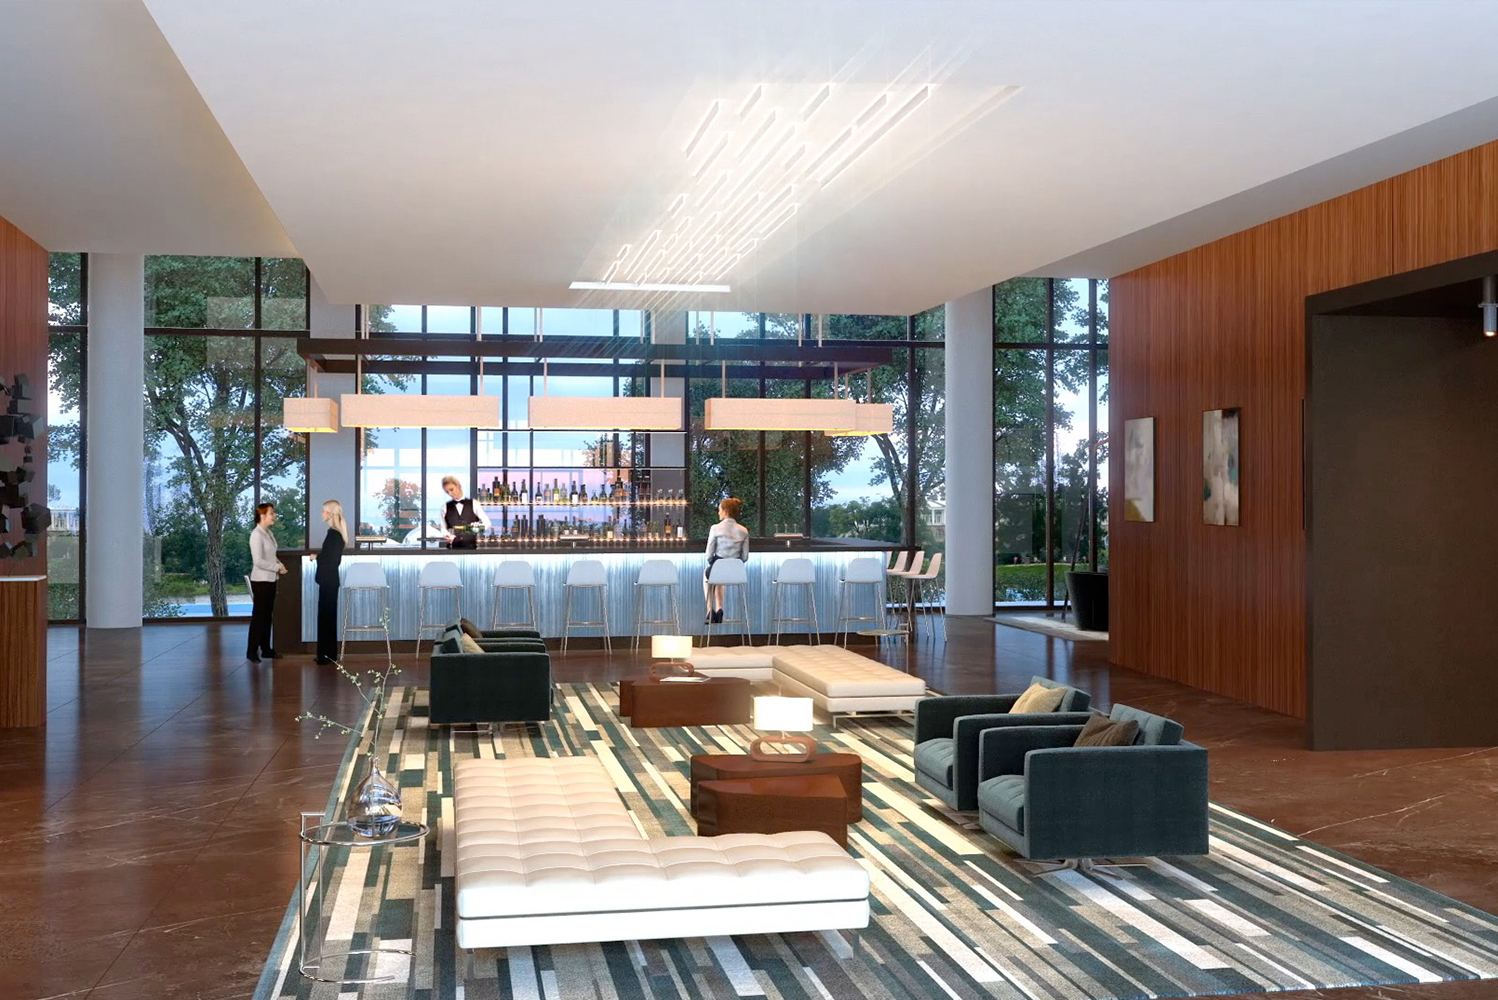 The hotel will feature a spacious lobby, AC Lounge and meeting rooms, each incorporating elements of European Modernism.